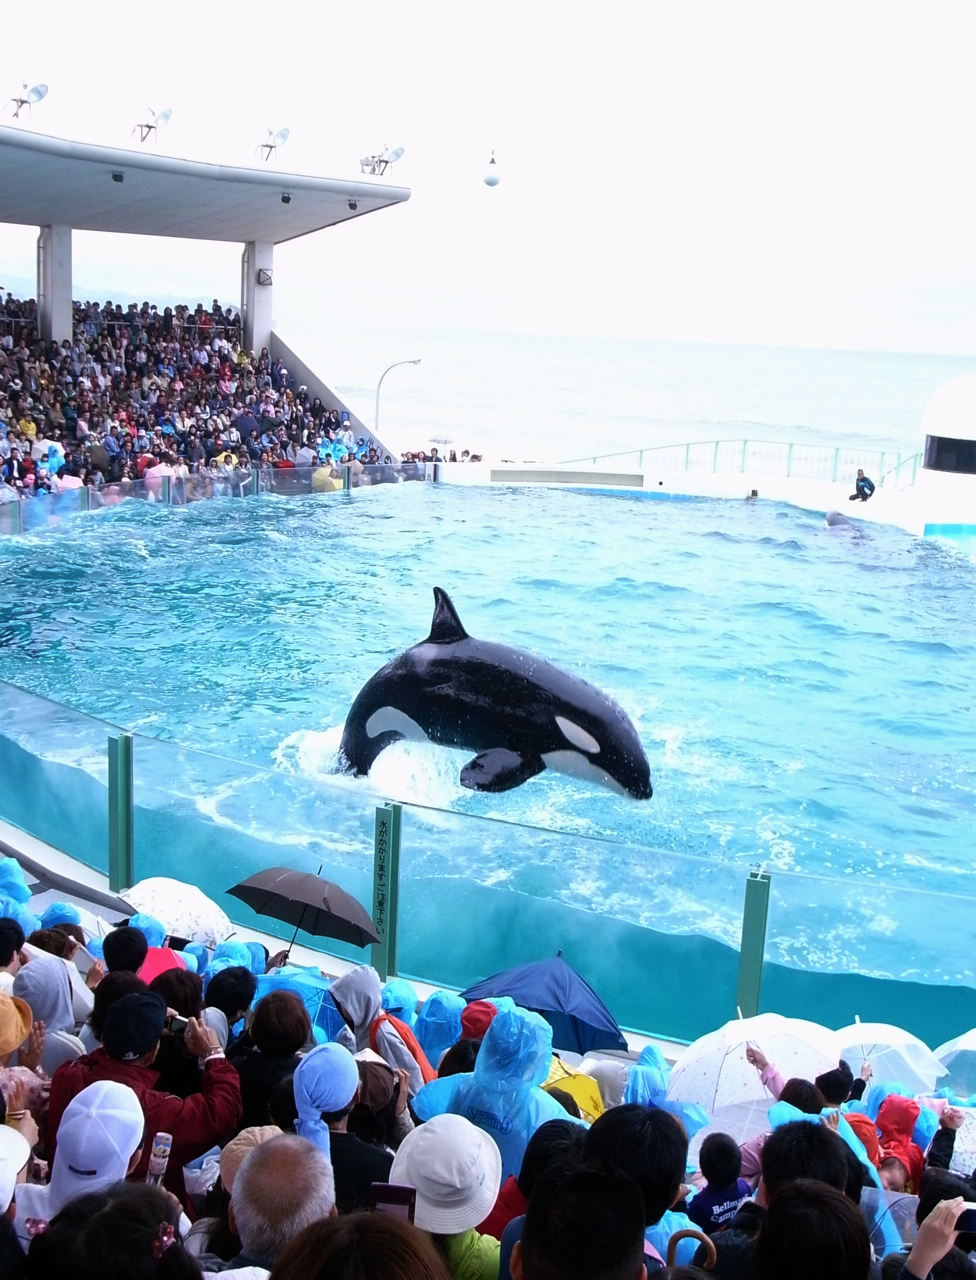 File:Orcinus orca show in kamogawa sea world.jpg